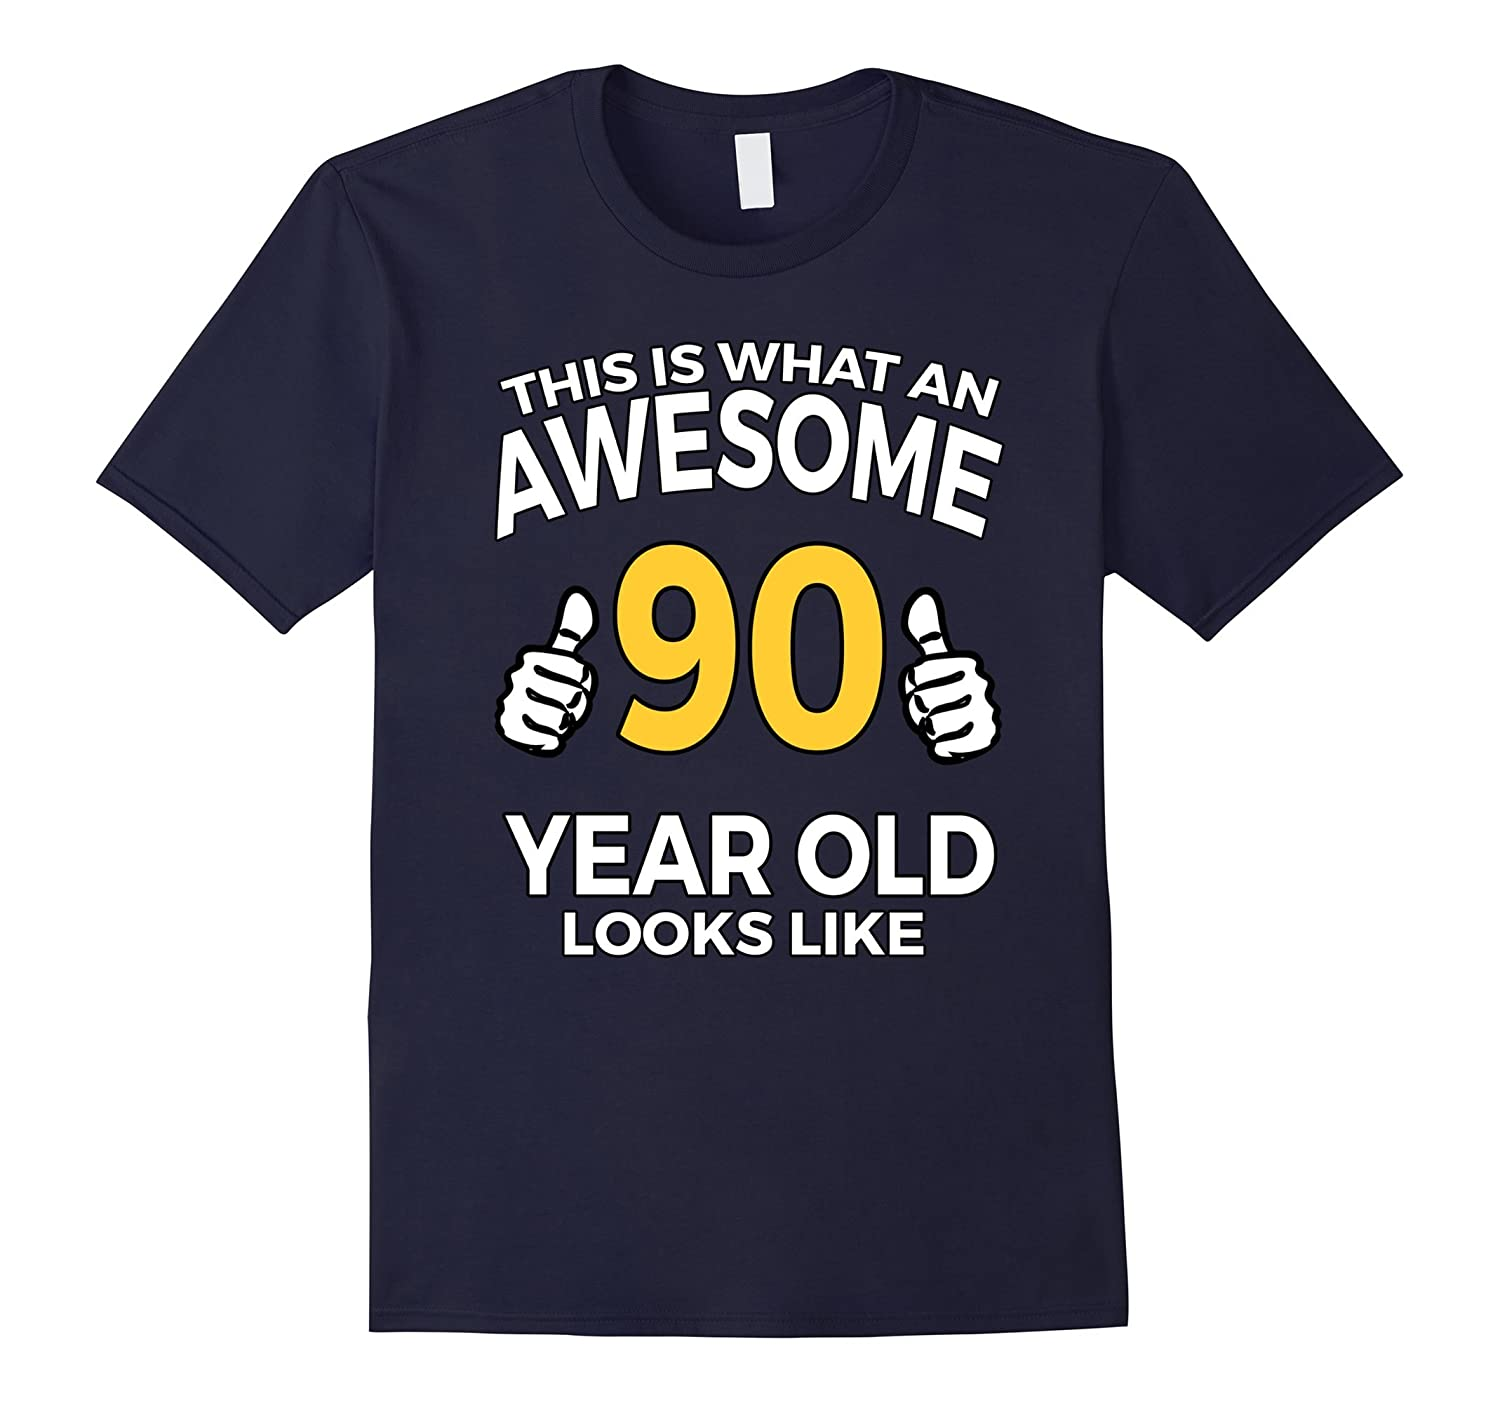 90 Year Old Birthday Gifts T Shirt For A Senior Man Or Woman TD Teedep